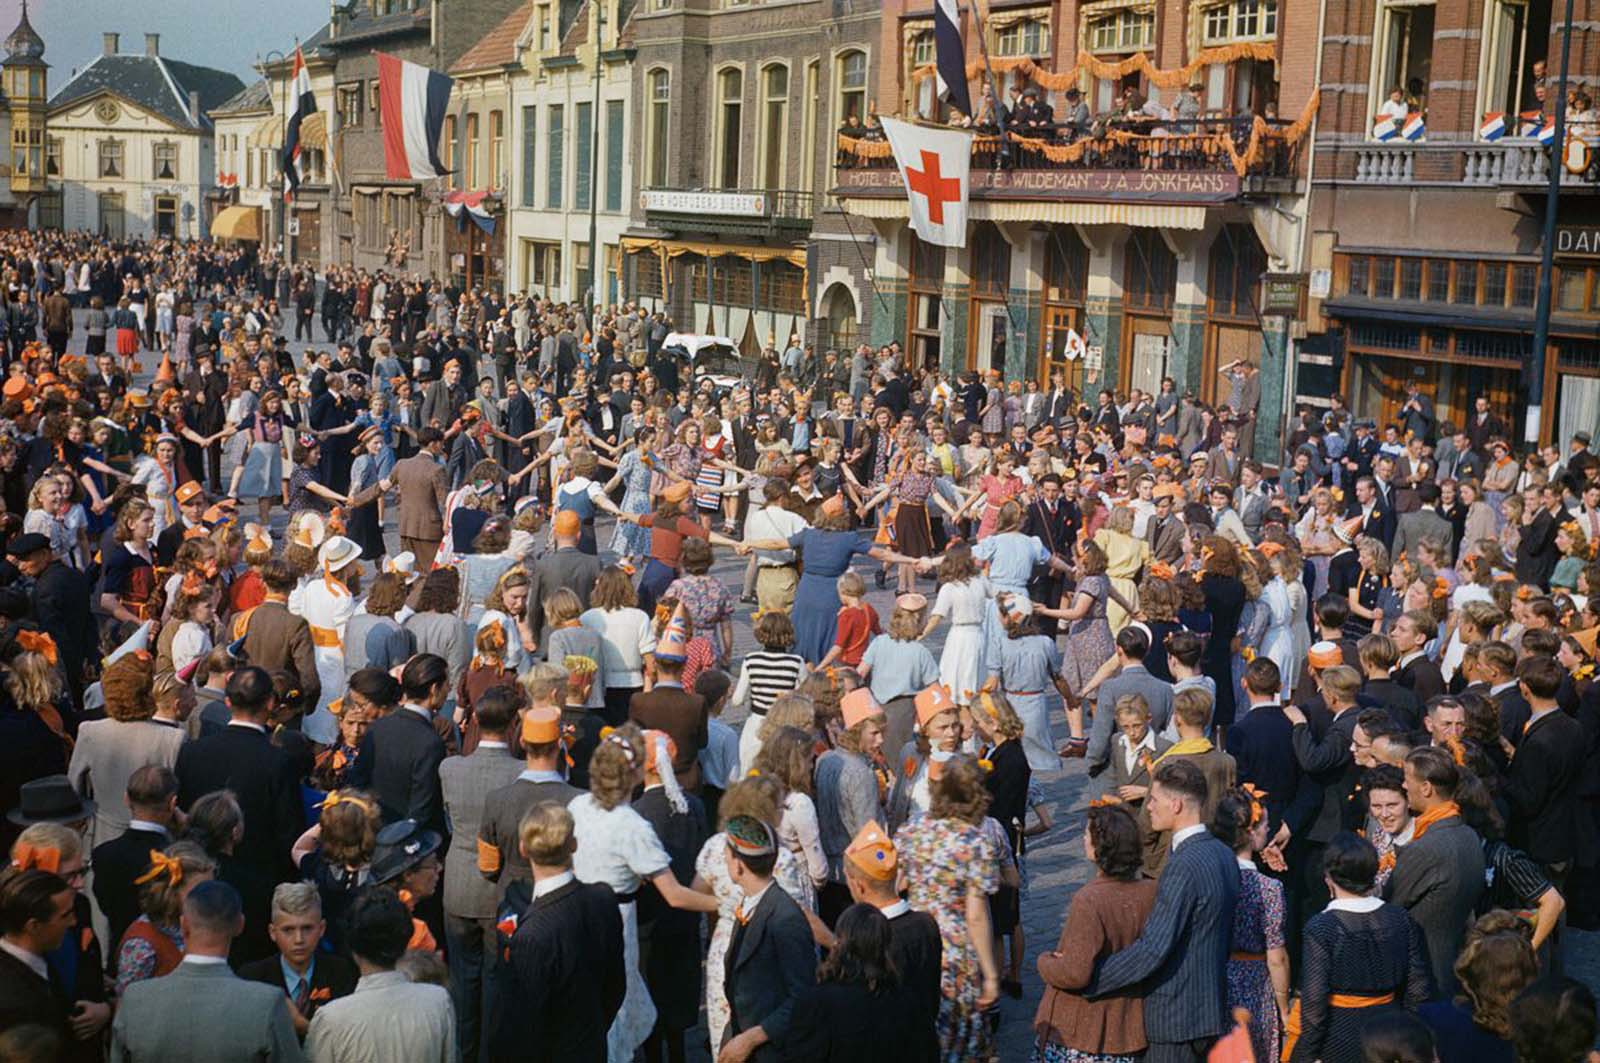 Dutch civilians dance in the streets after the liberation of Eindhoven by Allied forces.